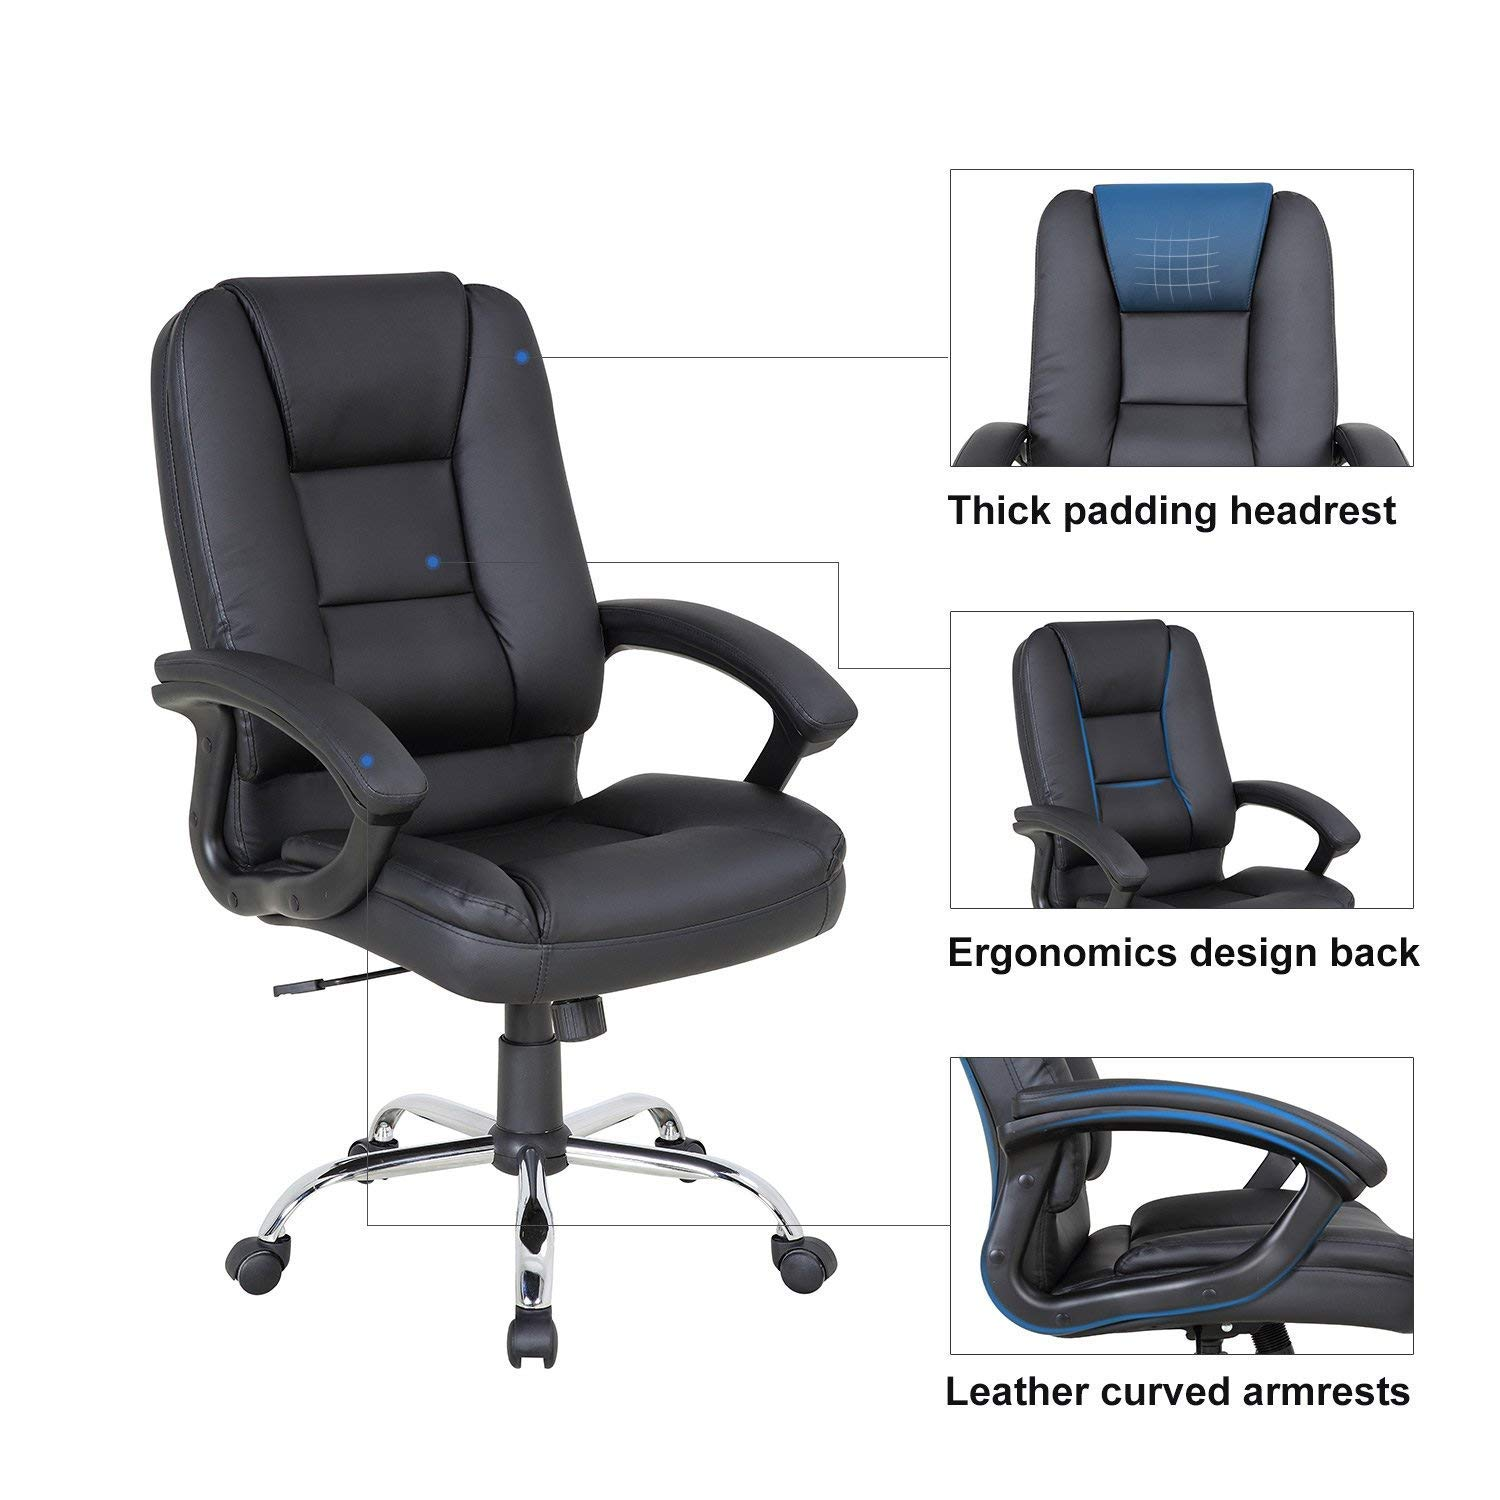 LCH PU Leather Office Chair Swivel Executive Chair with Tilt Function and Thick Seat, Ergonomic Computer Chair Headrest and Lumbar Support (Black) by LCH (Image #3)